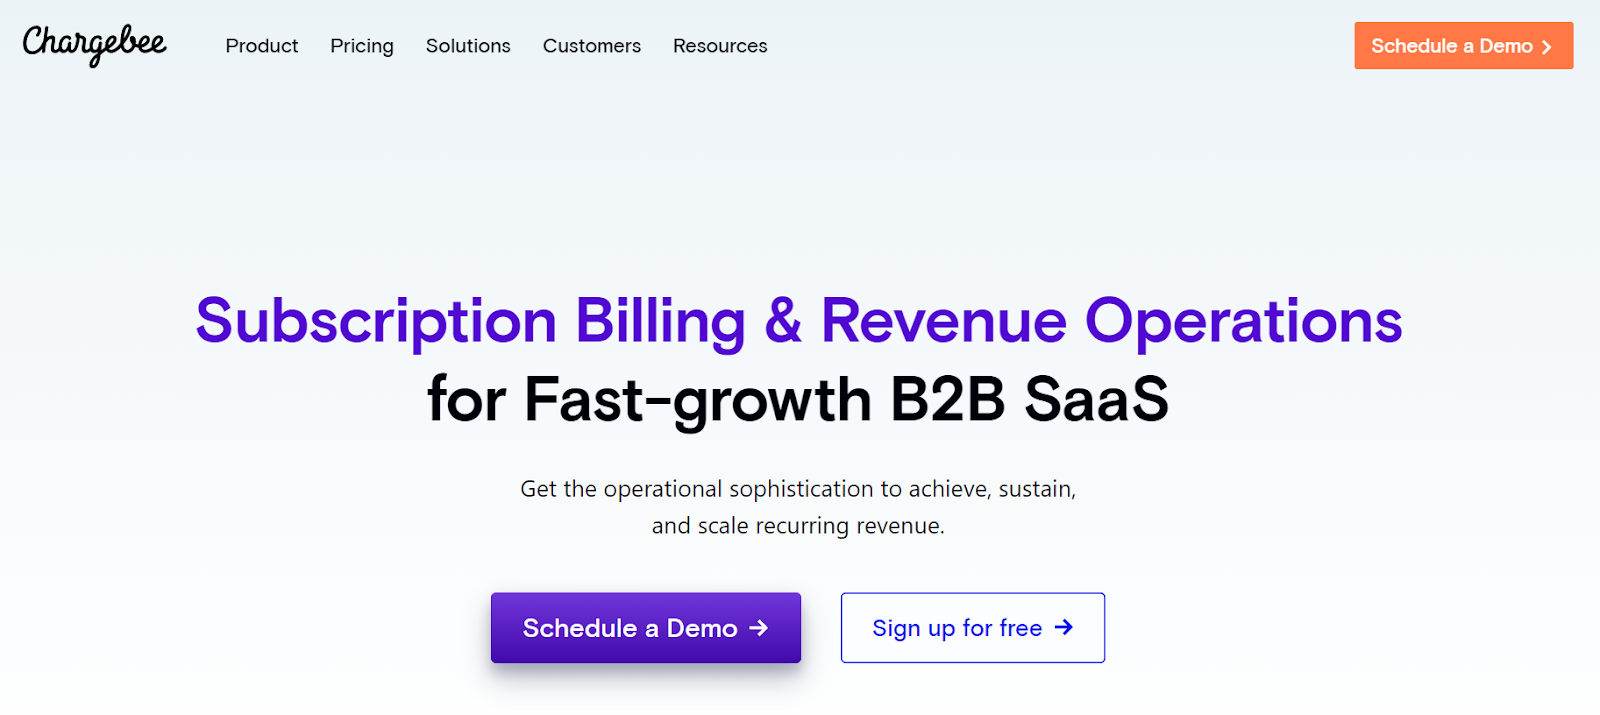 Chargebee subscription management for B2B SaaS